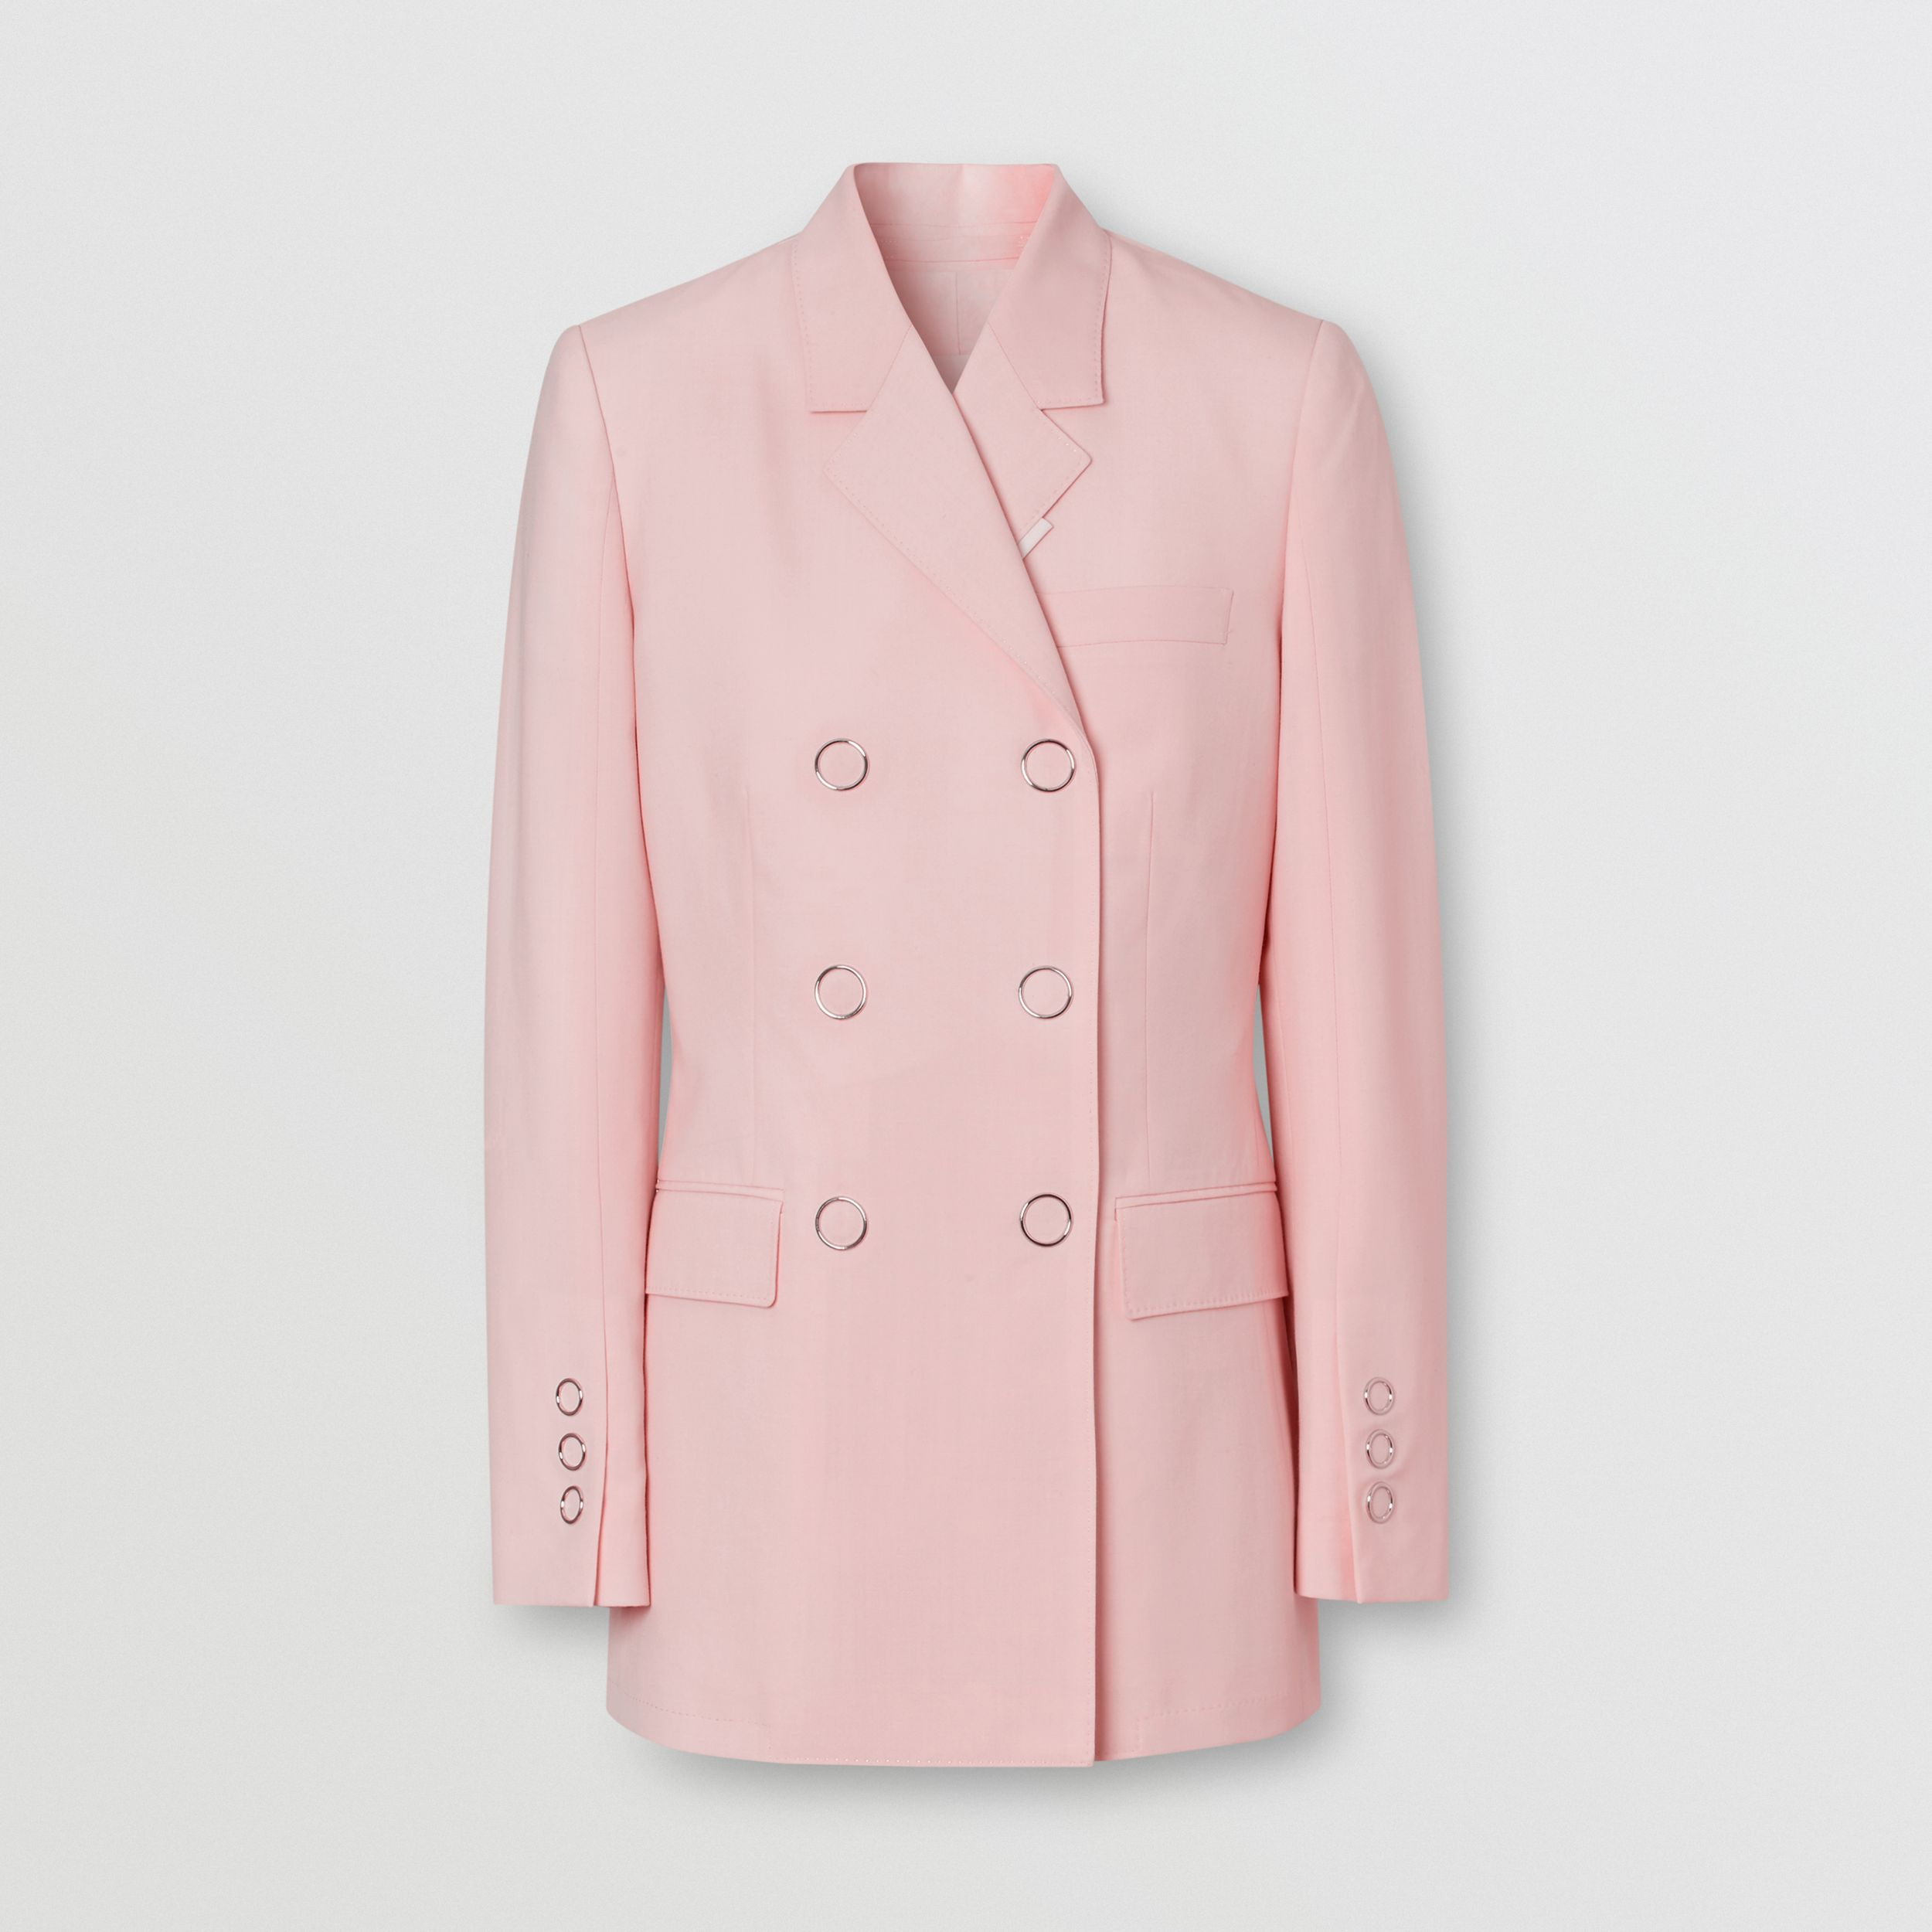 Tumbled Wool Double-breasted Blazer in Soft Pink - Women | Burberry - 4